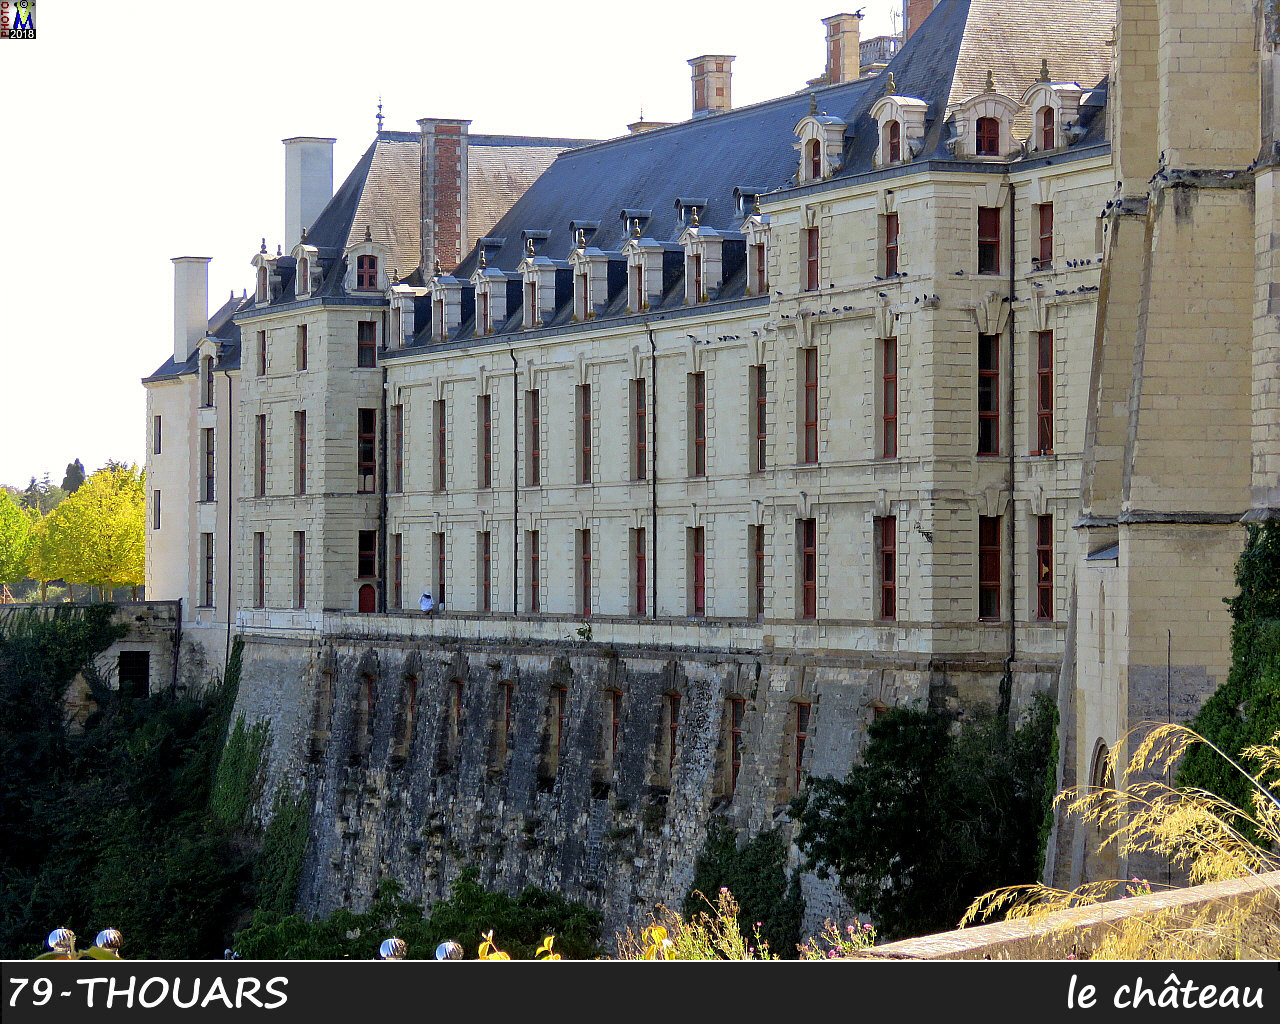 79THOUARS_chateau_1004.jpg